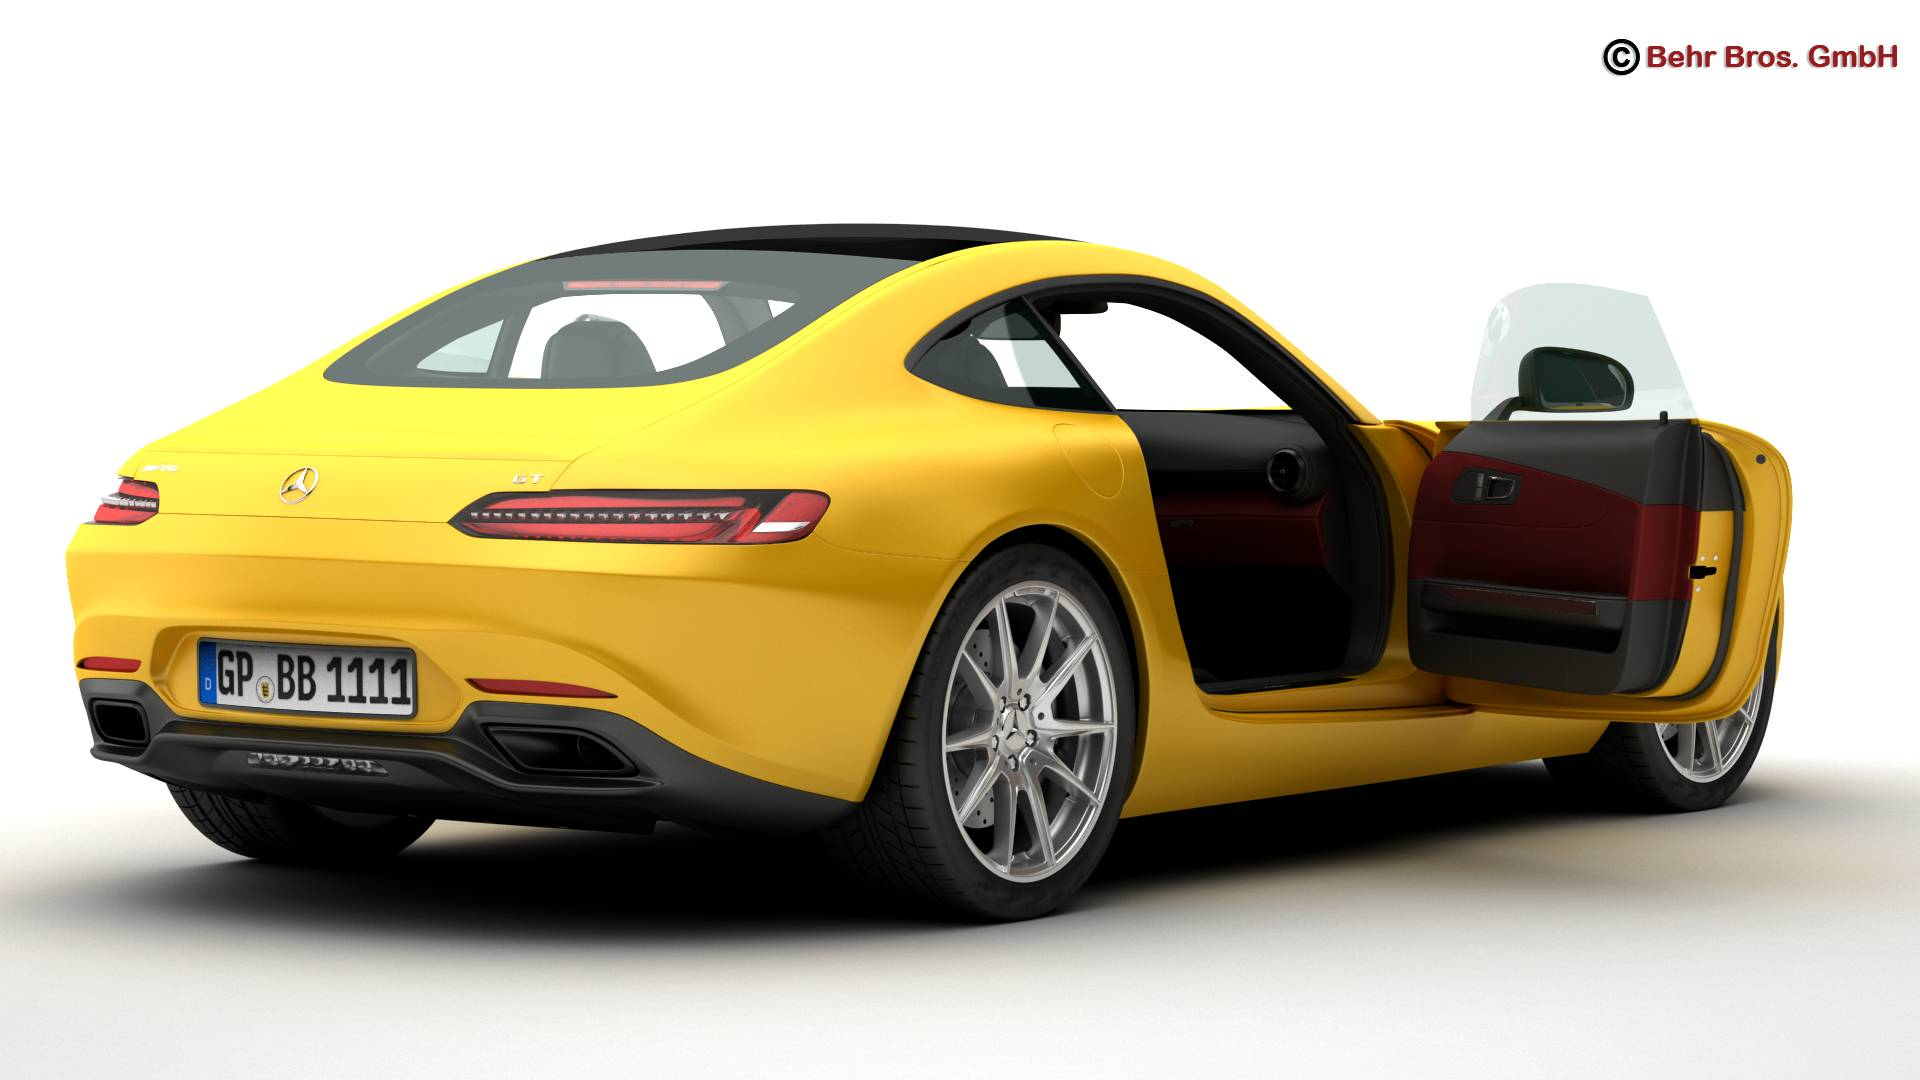 mercedes amg gt 2015 eu and us version 3d model 3ds max fbx c4d lwo ma mb obj 210116